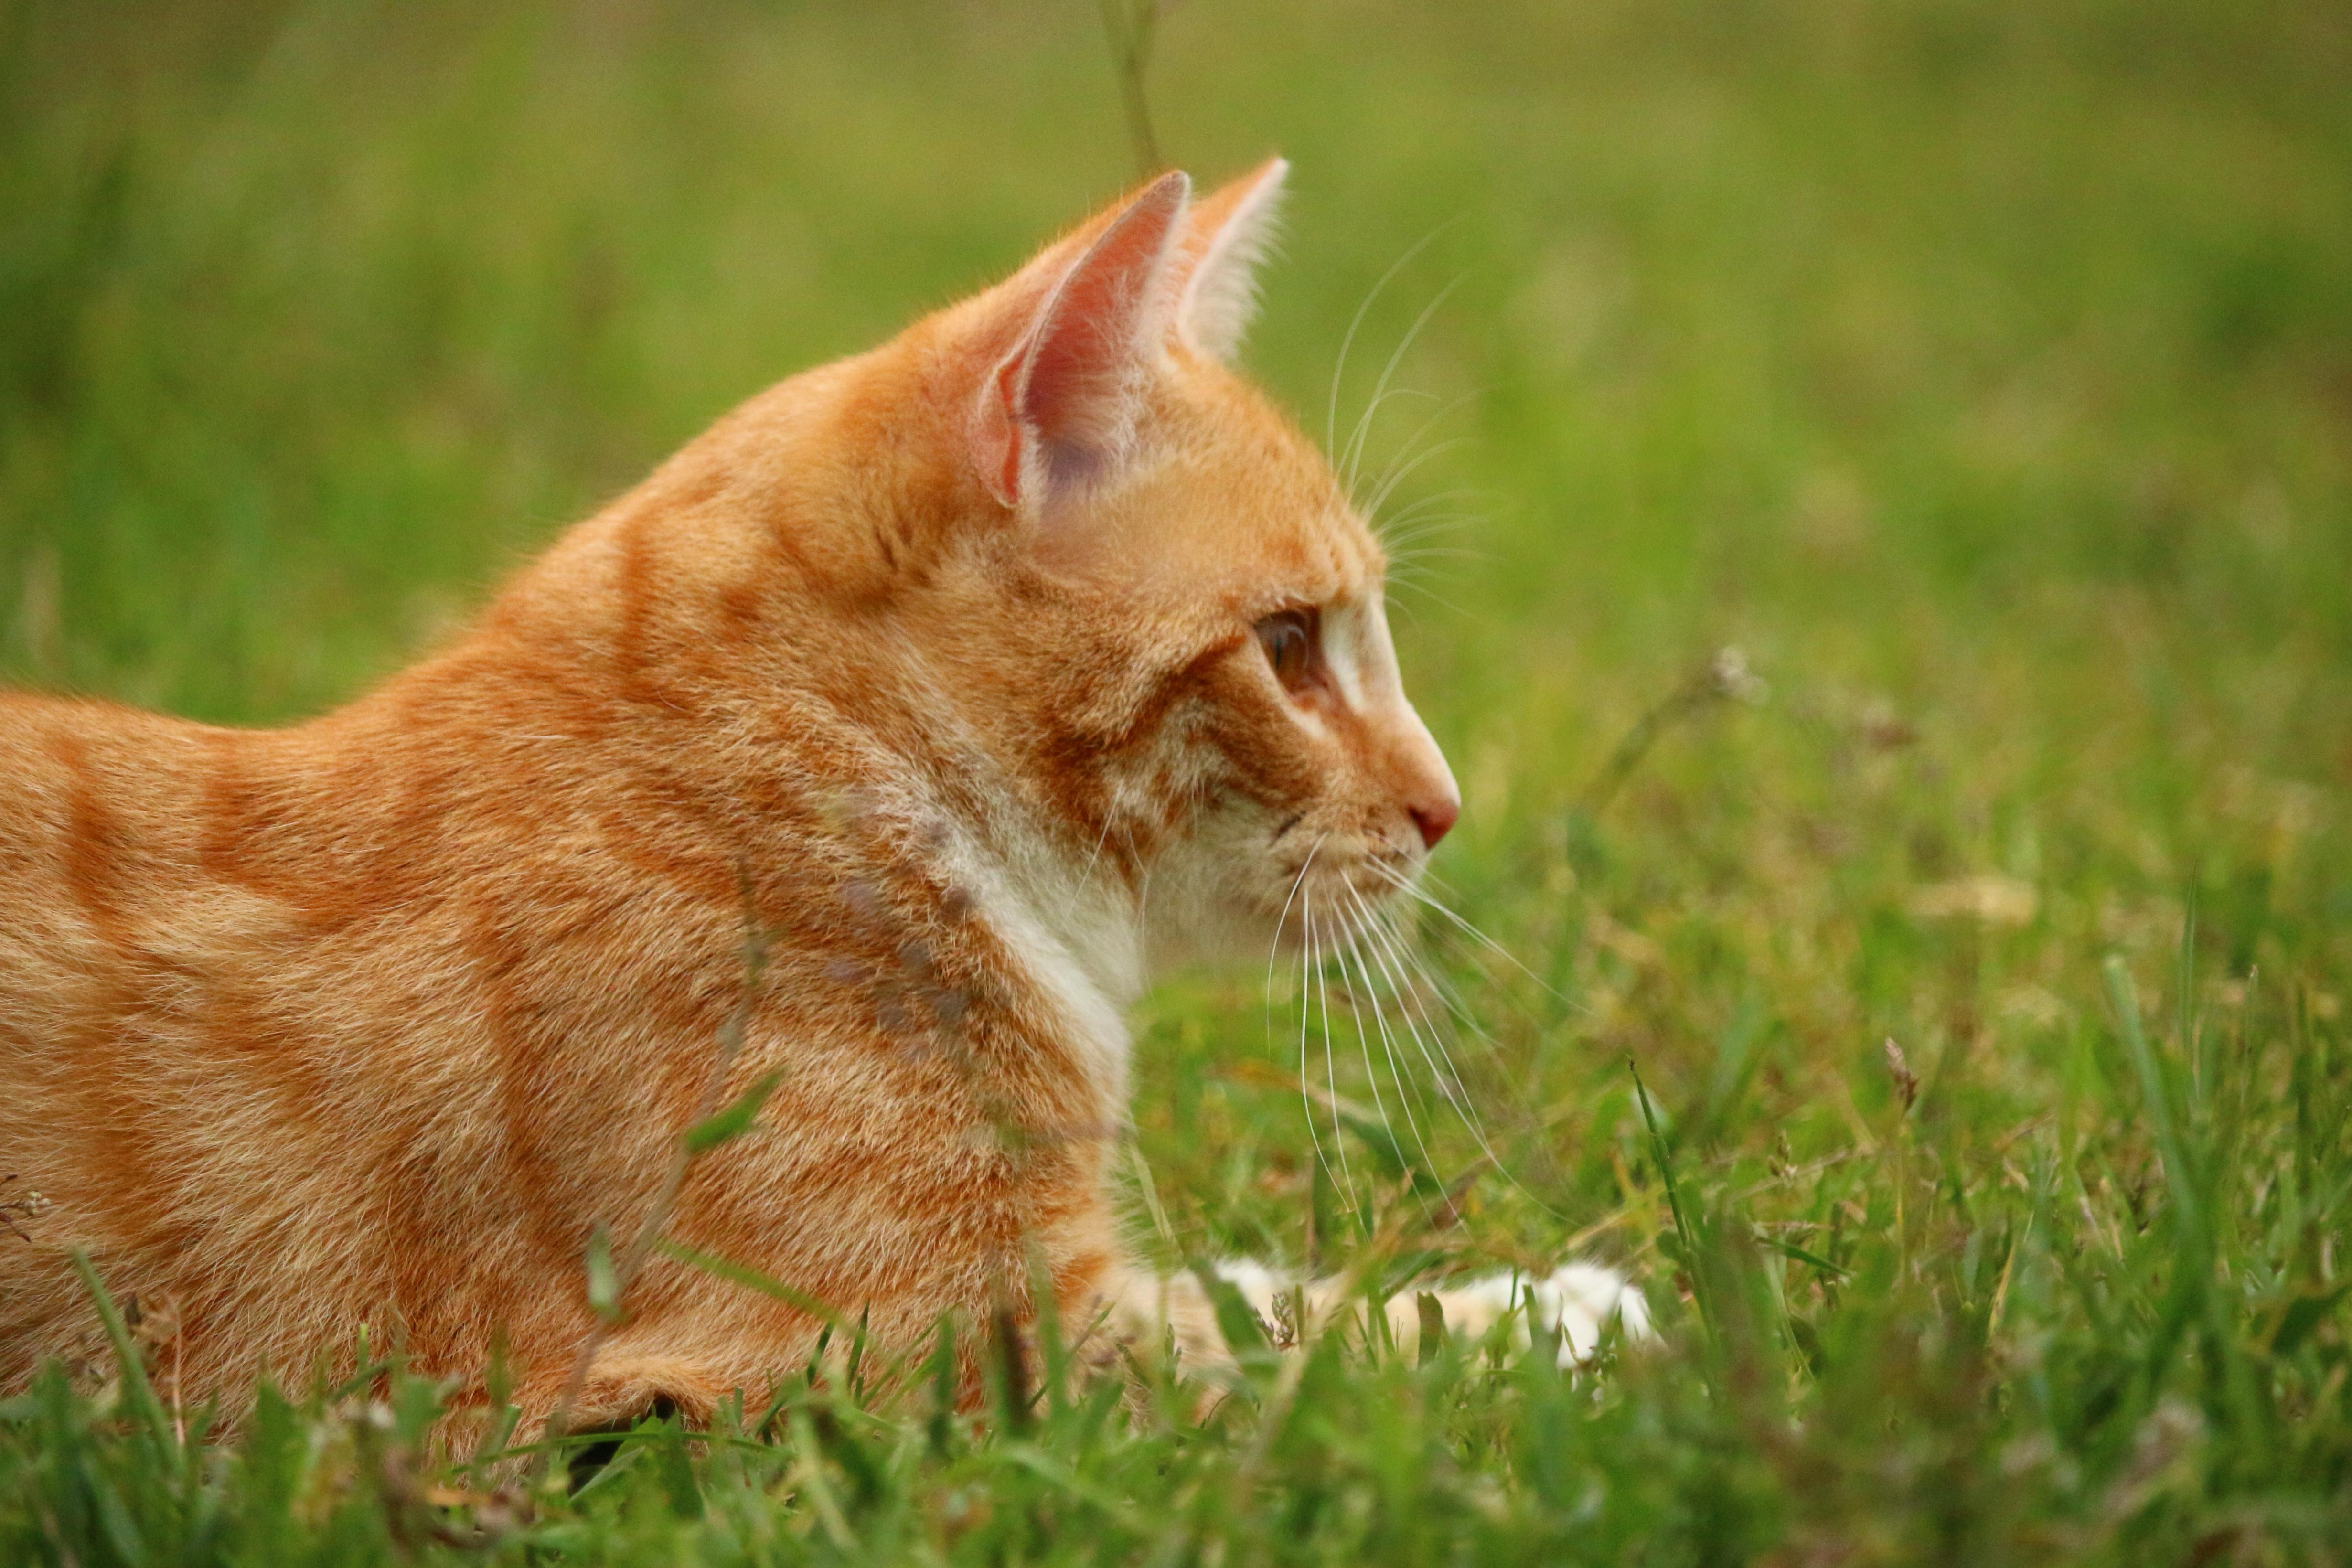 free picture: yellow cat, animal, grass, cute, nature, fur, feline